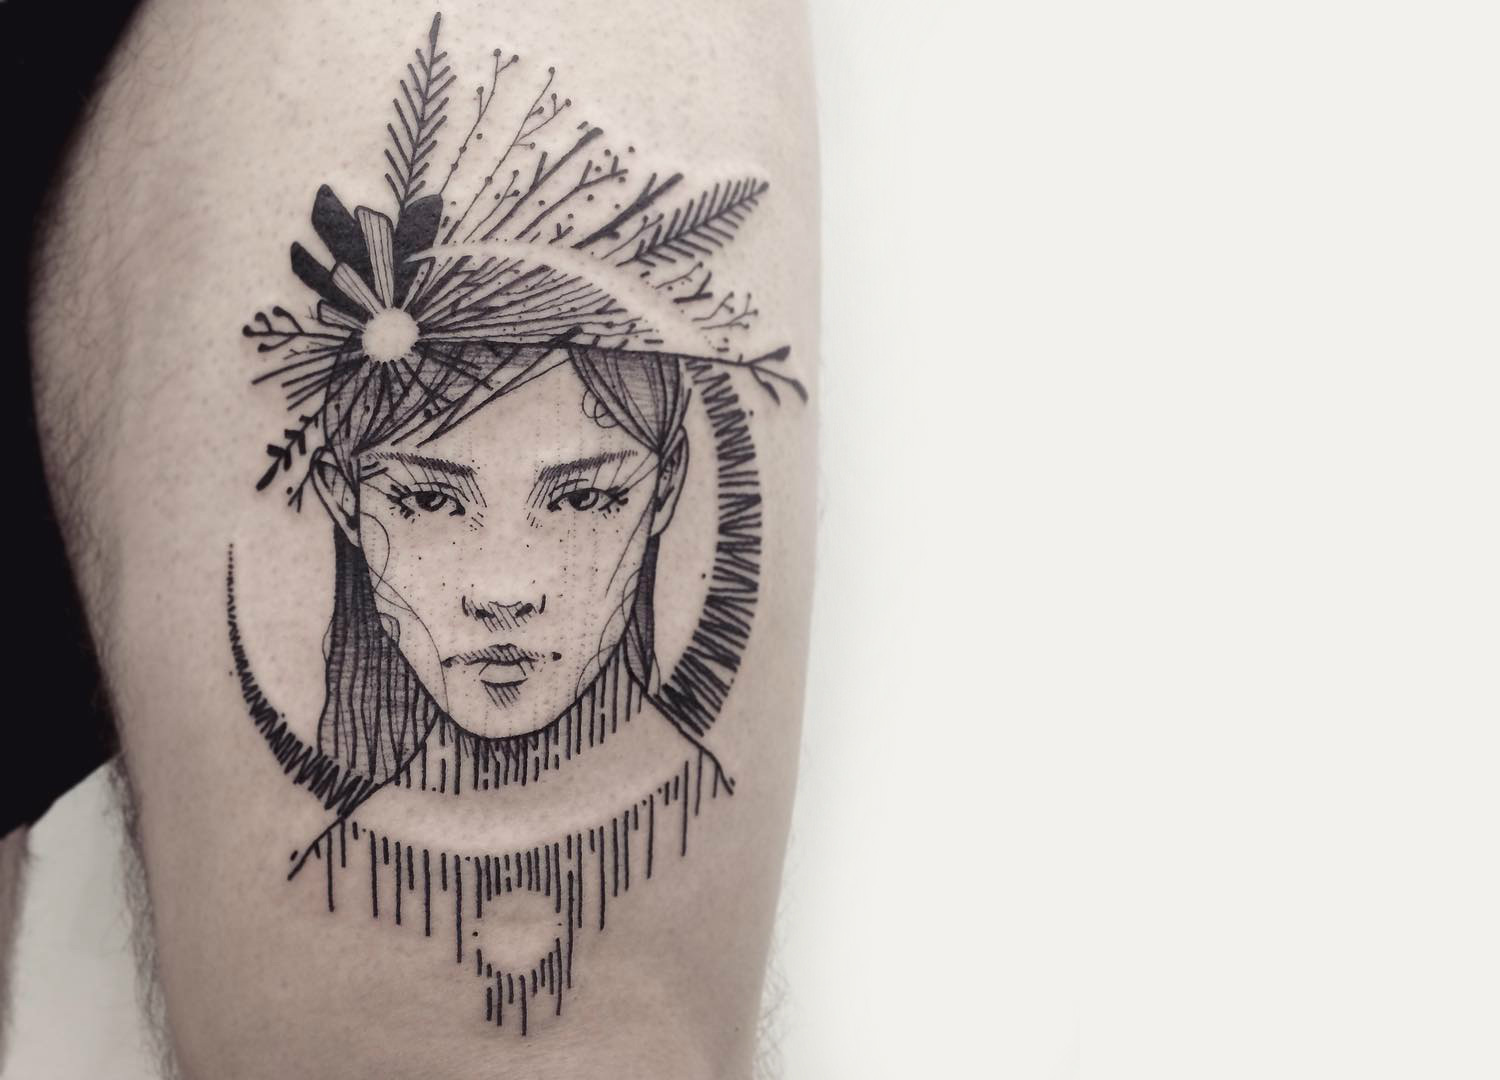 Sketch portrait tattoo by Guga Scharf